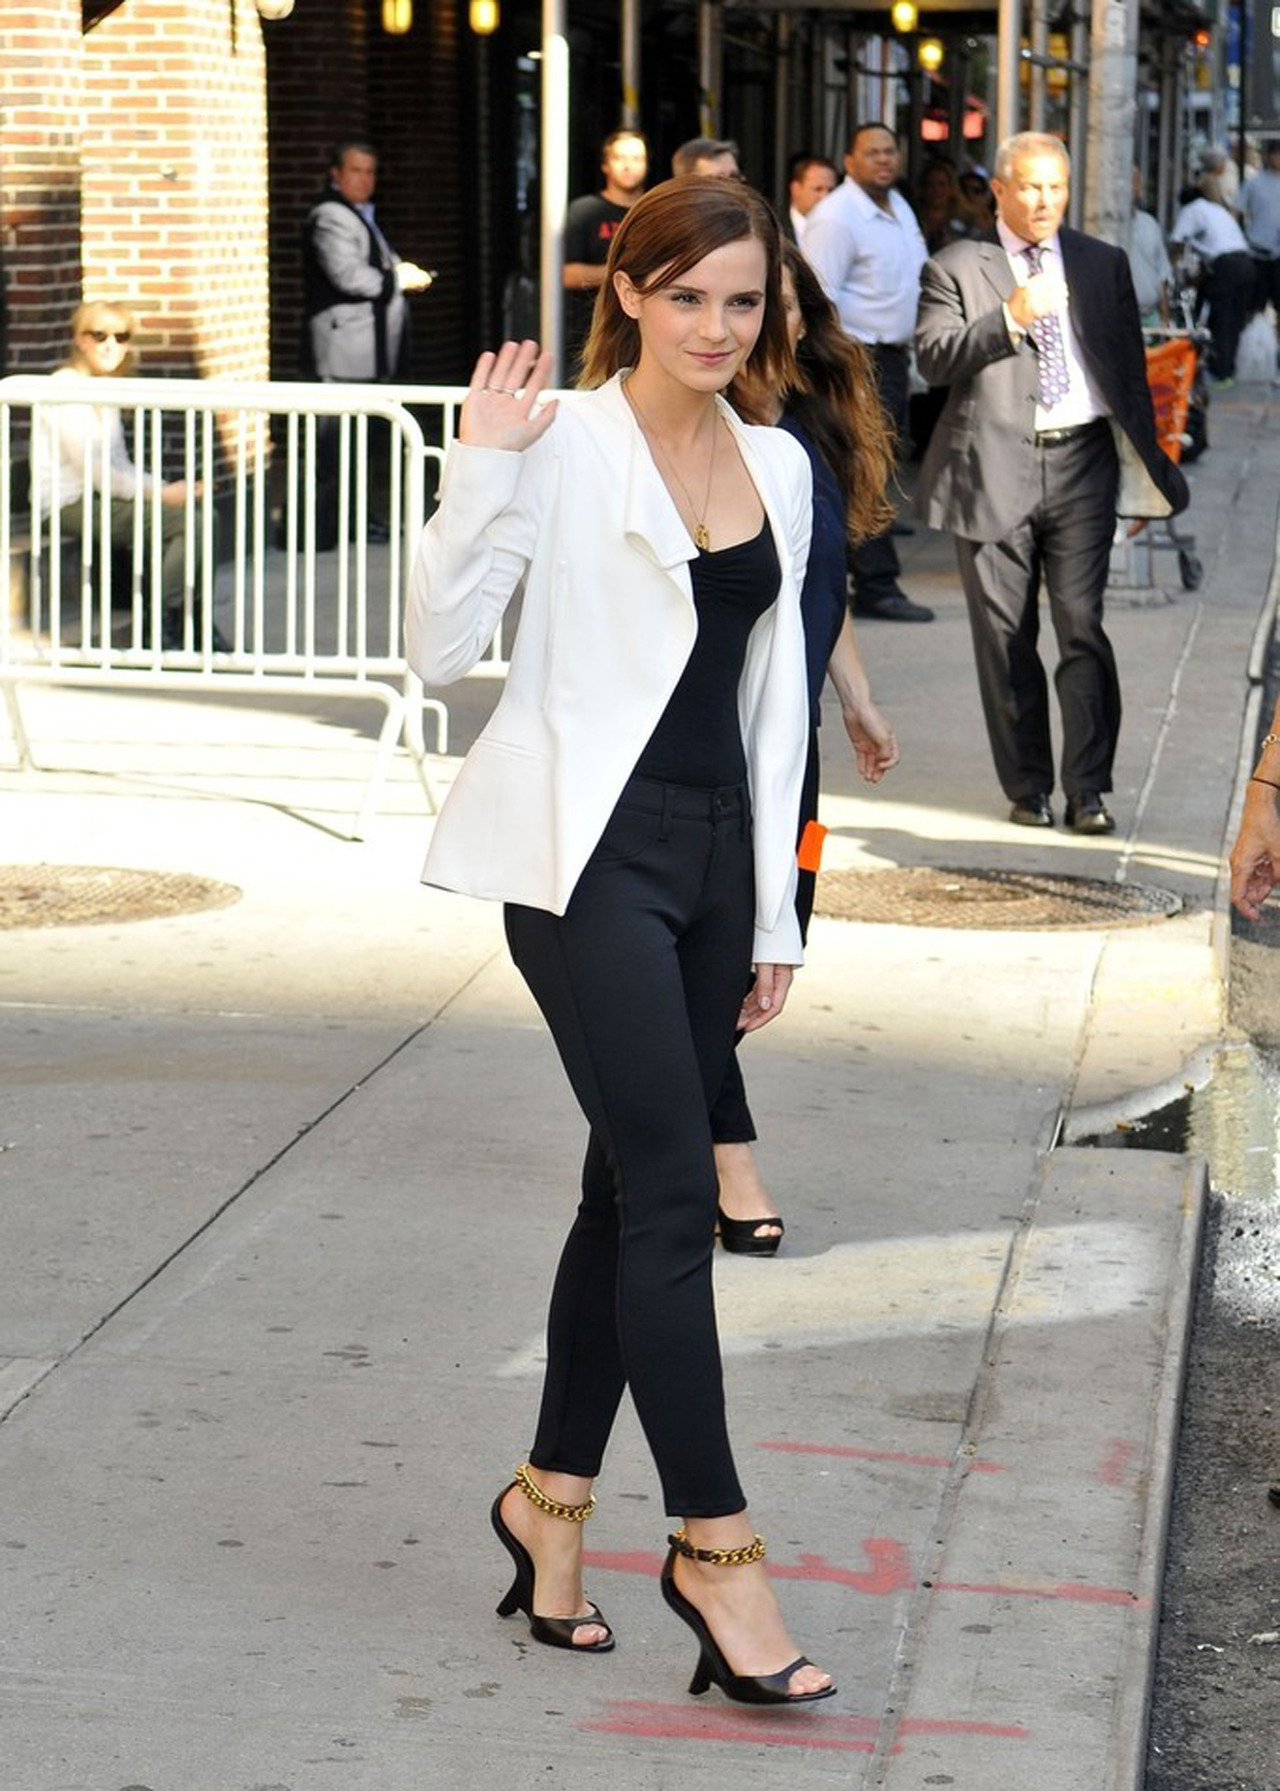 Emma Watson (wearing shoes by Tom Ford) at The Late Show with David Letterman, September 5th